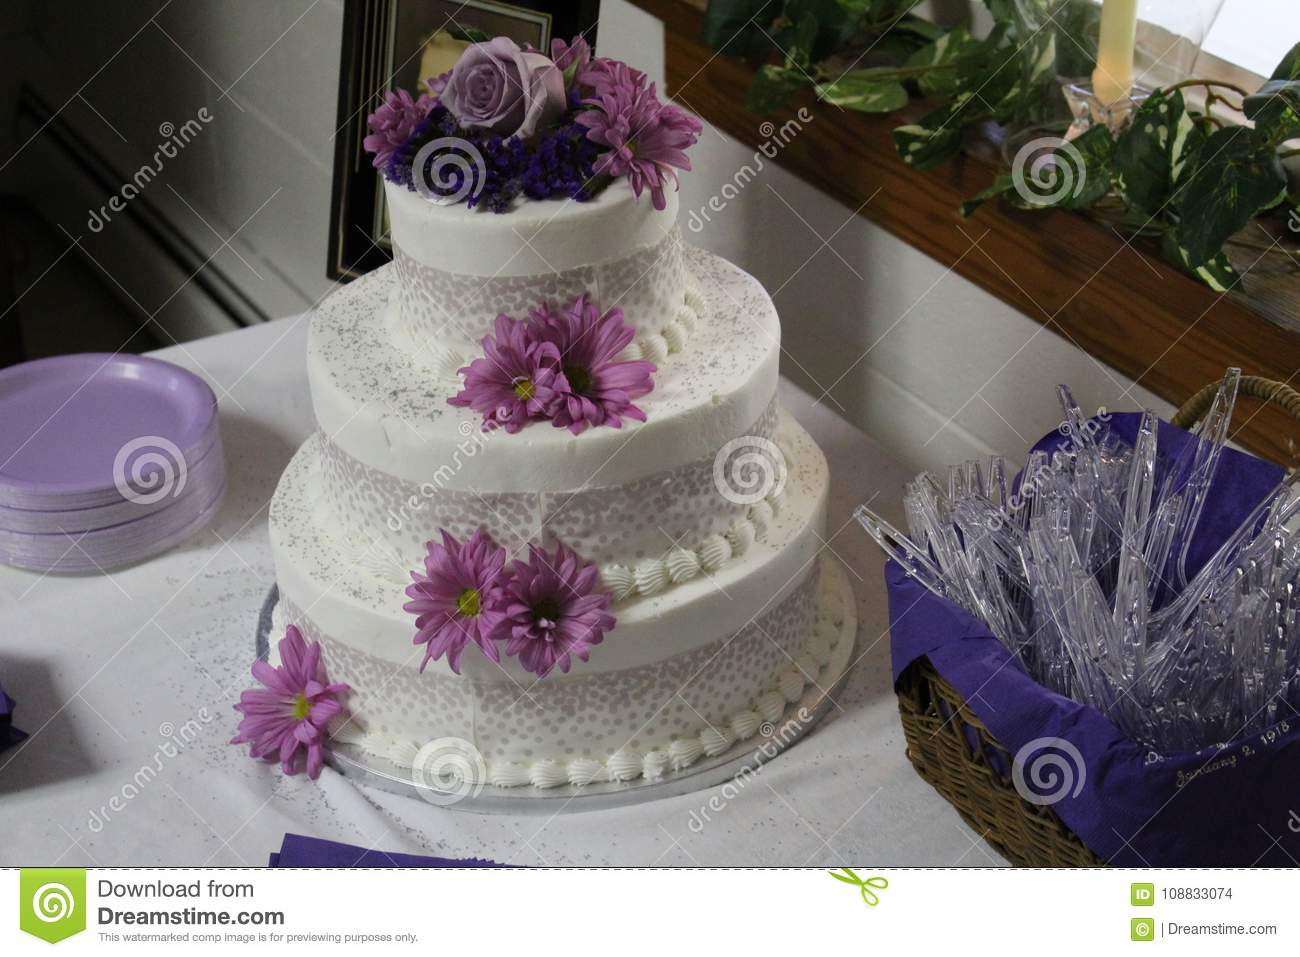 A Beautiful Birthday Cake Decorated With Flowers And Perfectly In Focus